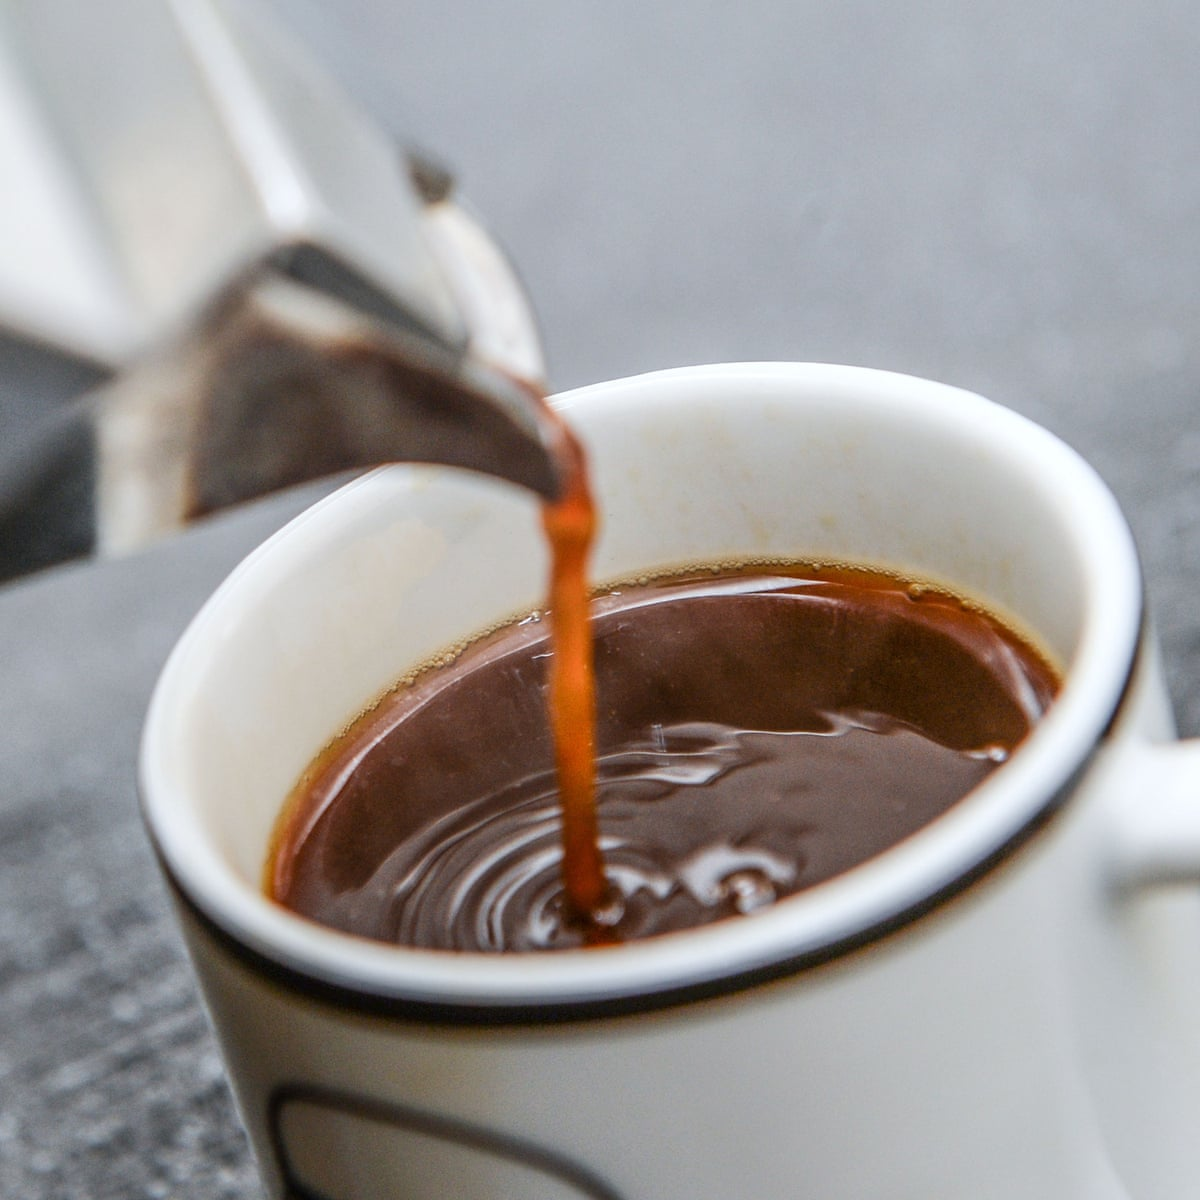 Up to 25 cups of coffee a day safe for heart health, study finds | Food |  The Guardian